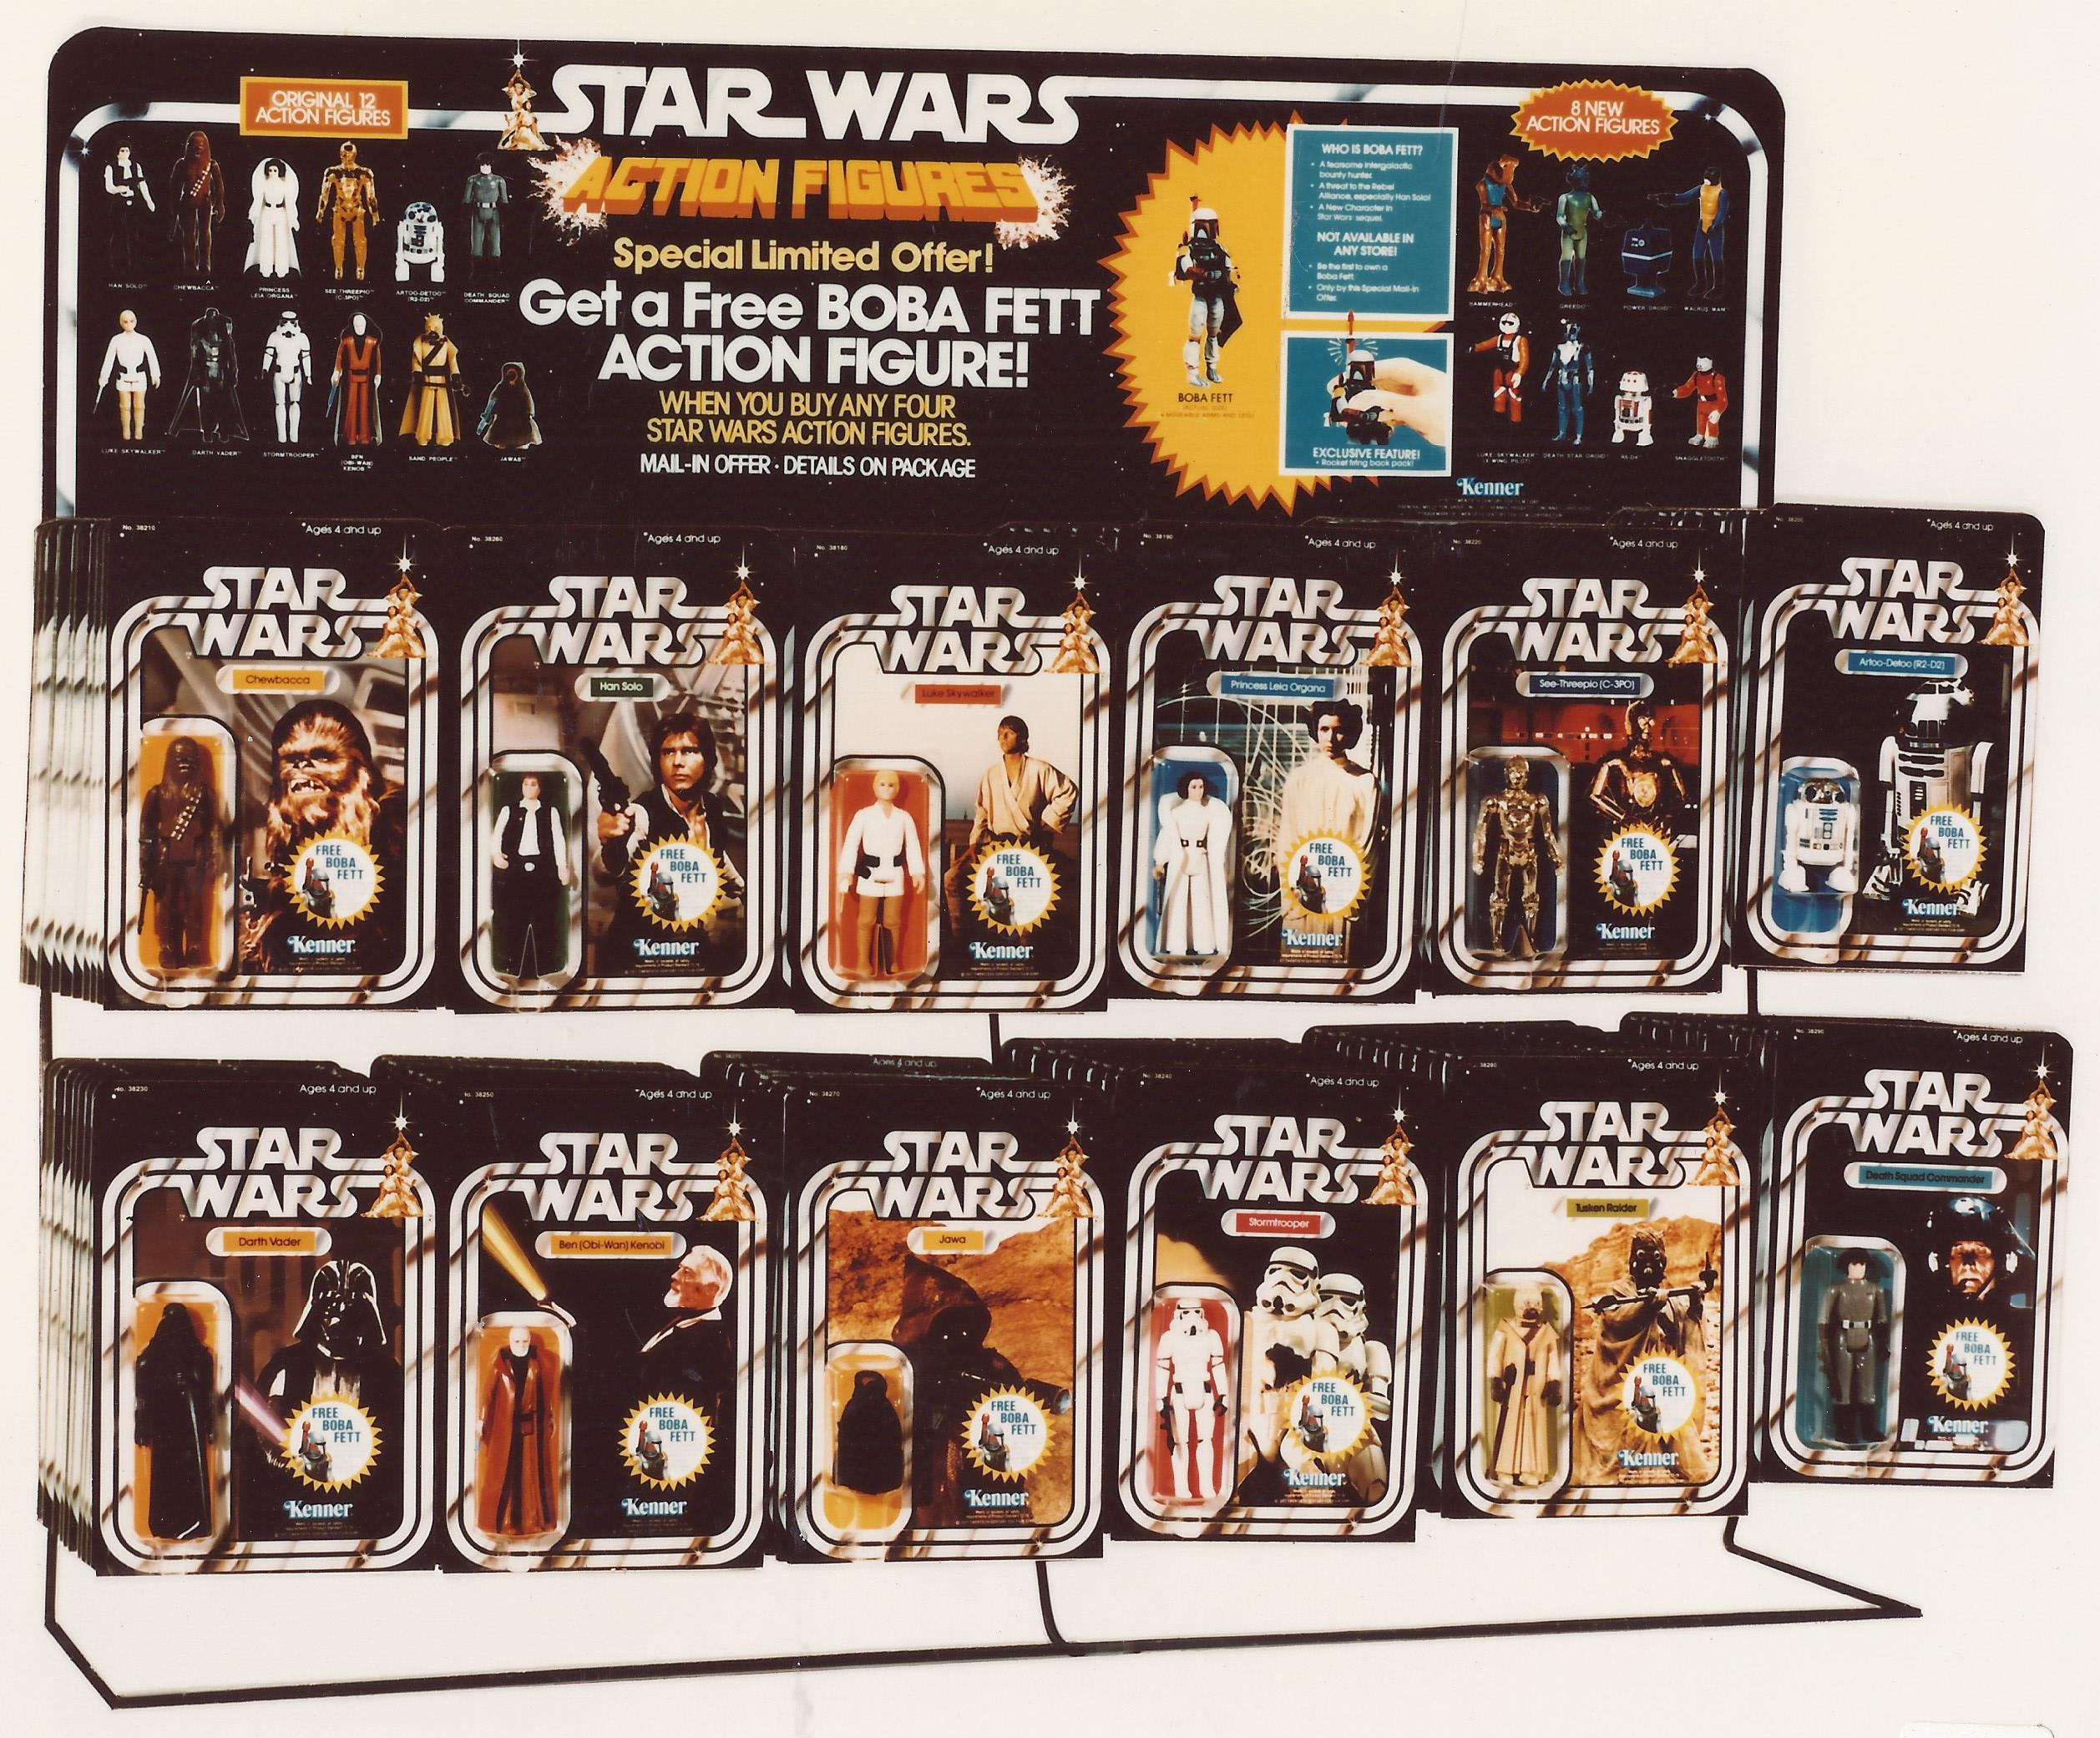 Star Wars Vintage Toys : Sw display kennercollector vintage star wars toy store